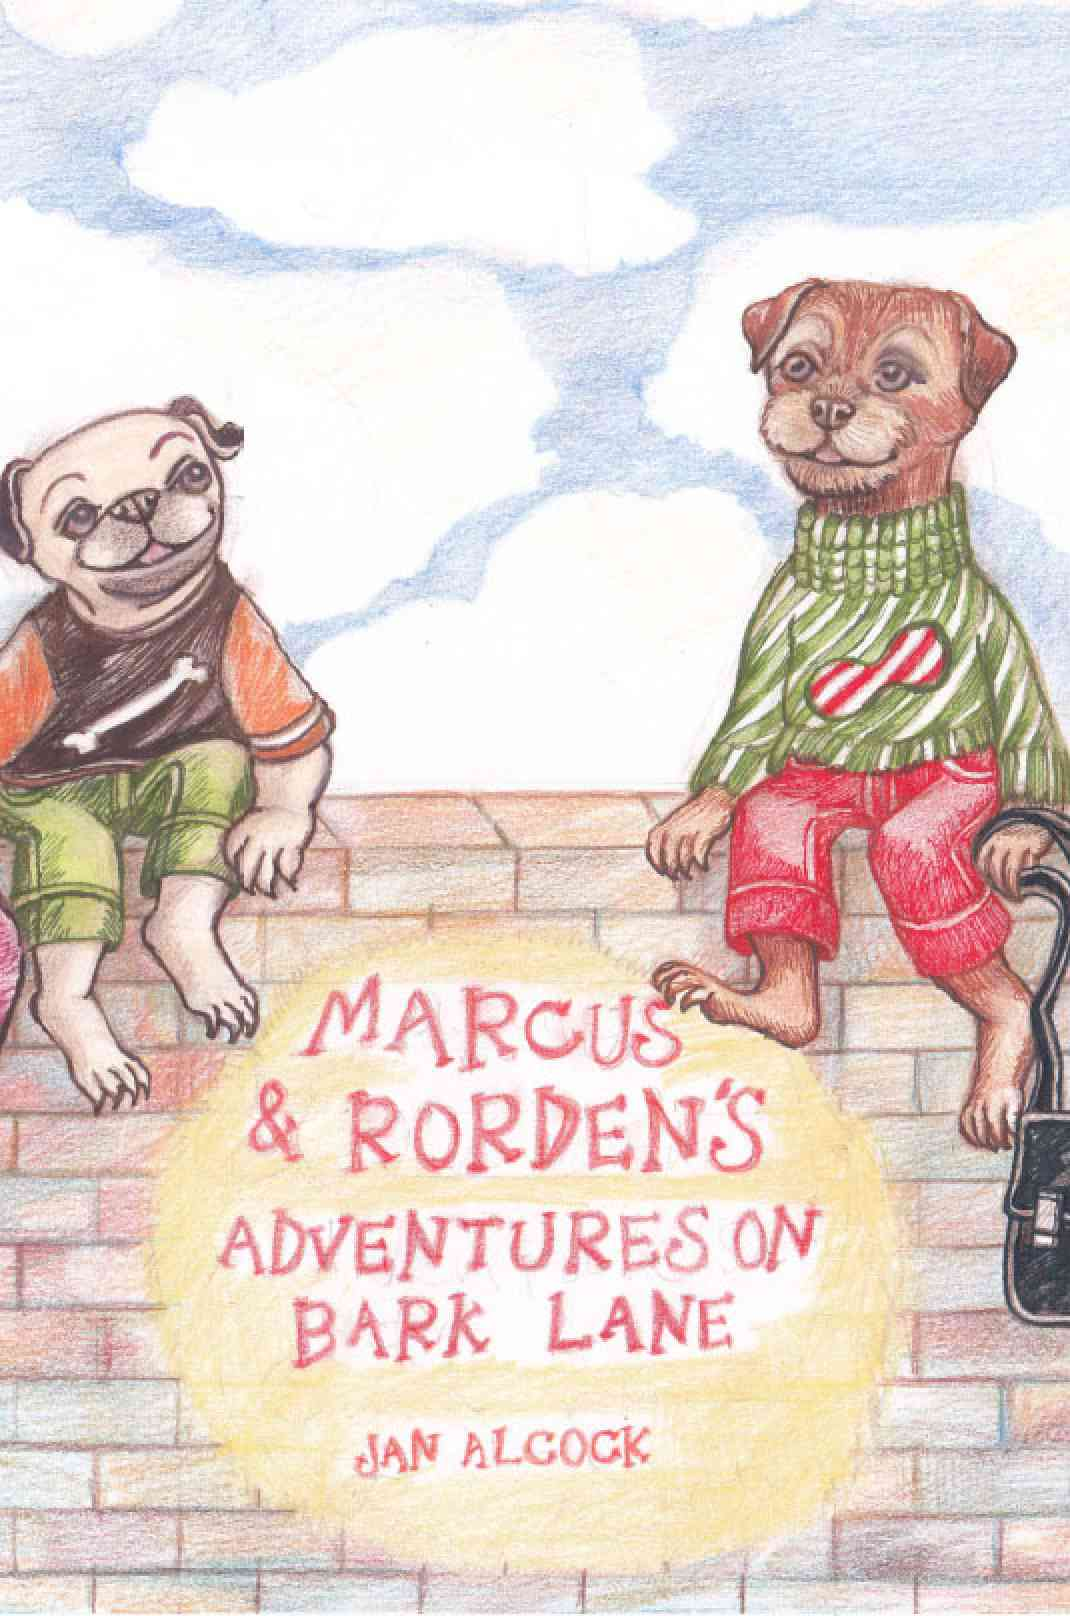 Marcus and Rorden's Adventures on Bark Lane